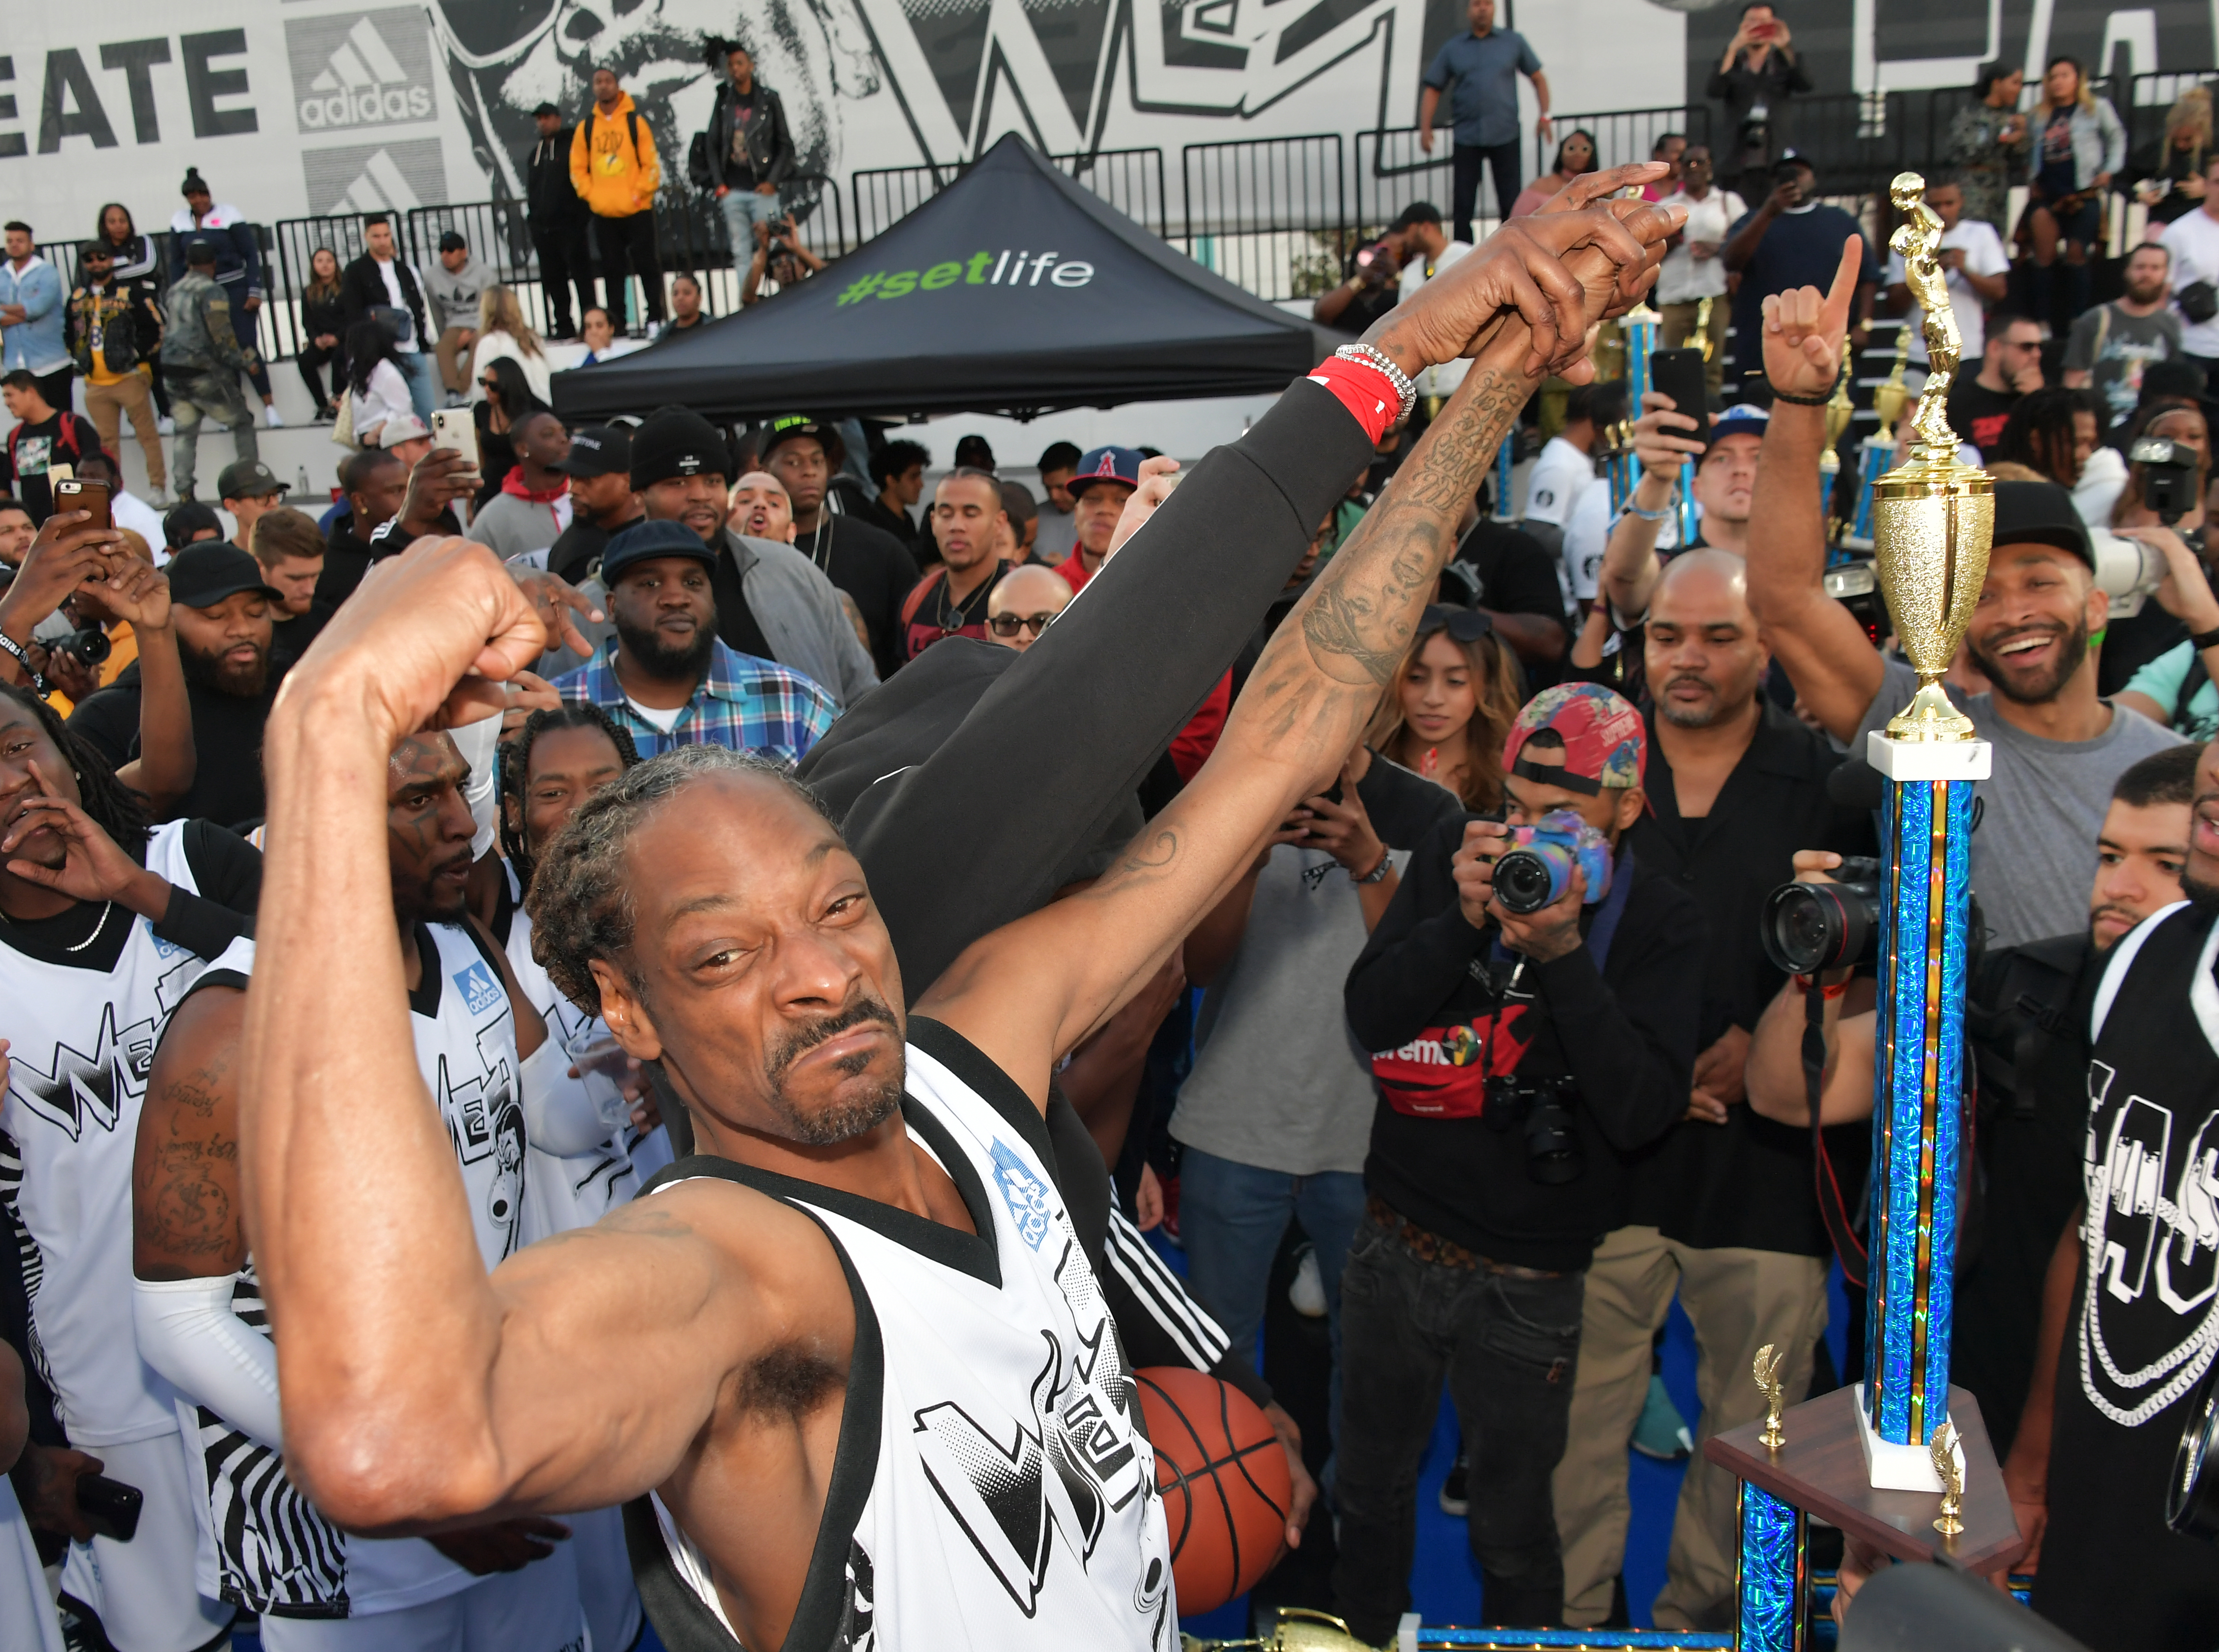 Snoop Dogg's Massive Weapon Earns Him Community Service naked (16 pics)